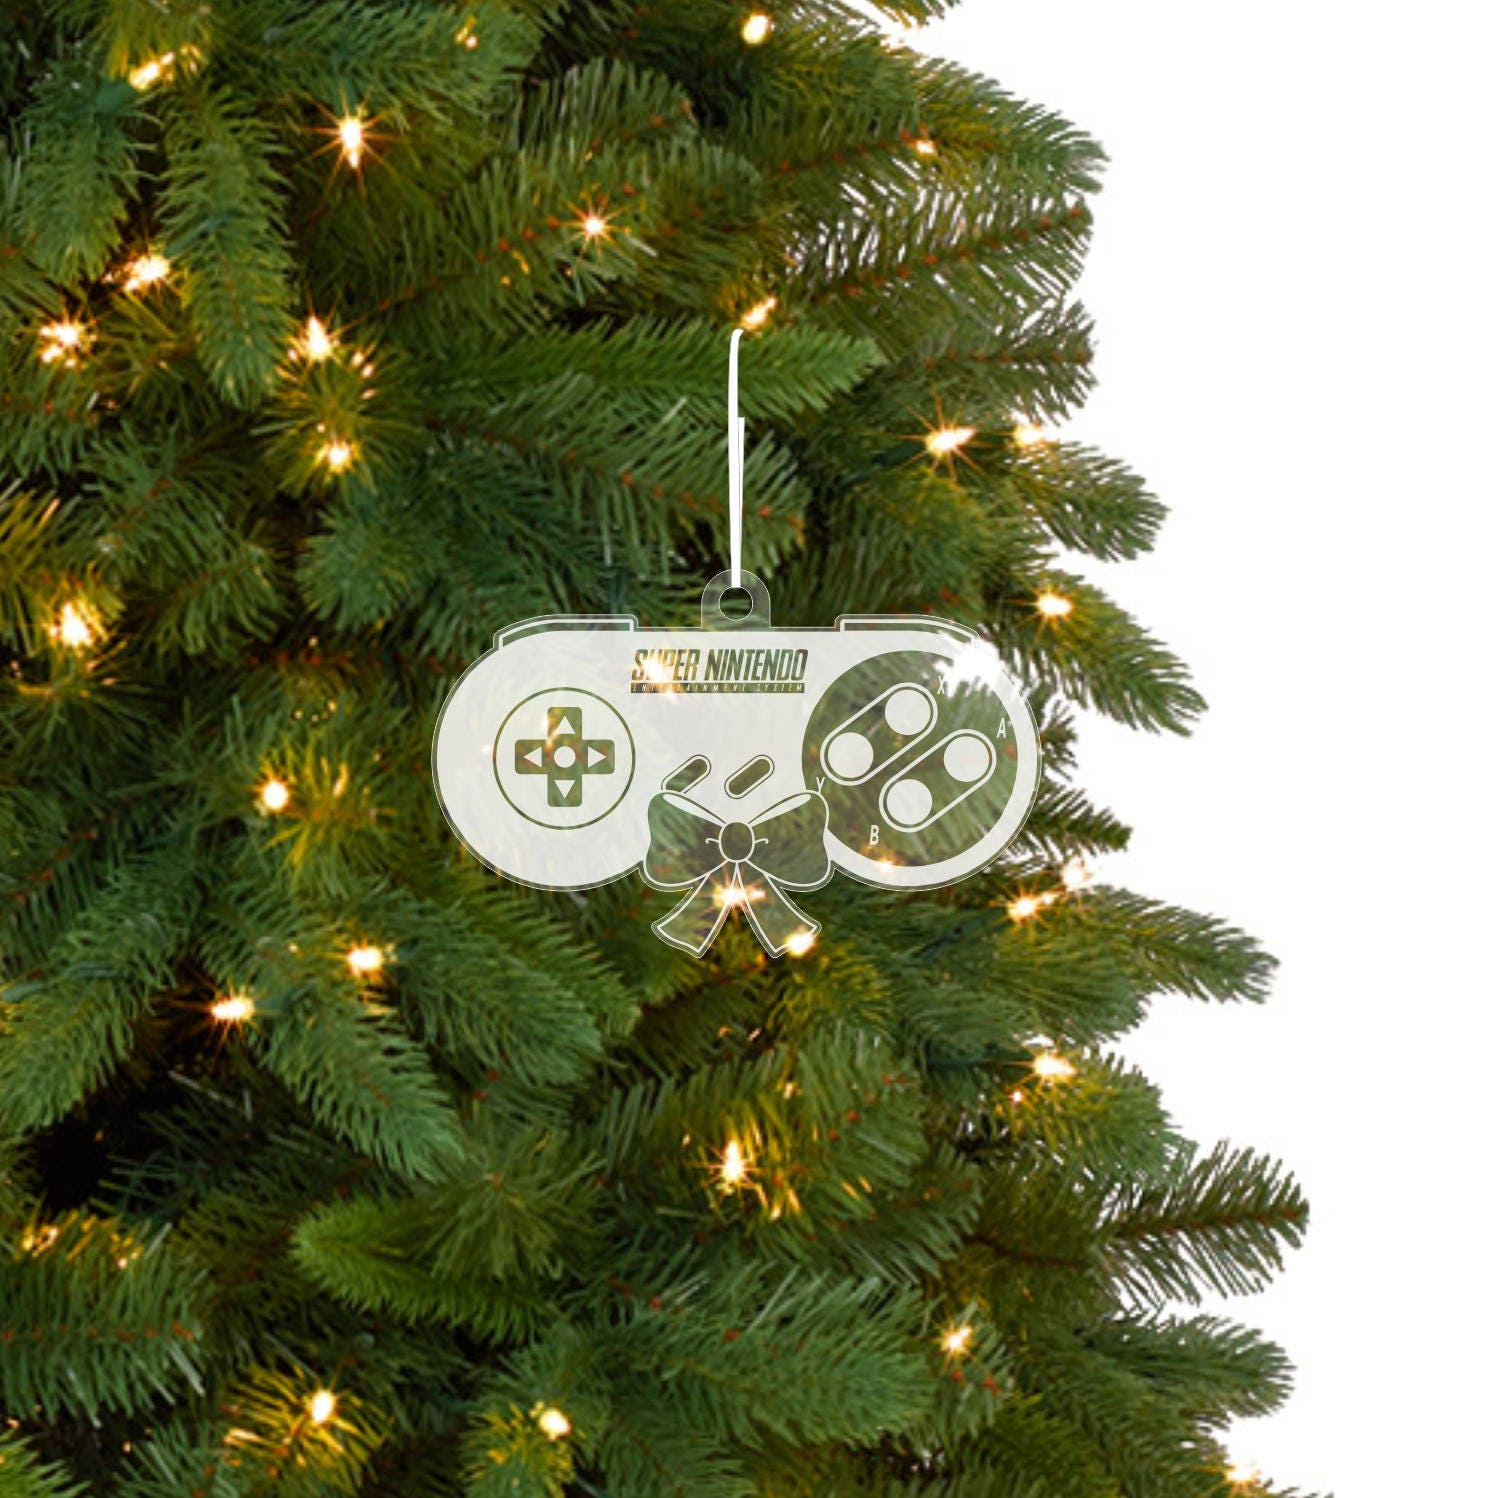 Super Nintendo Christmas Ornaments 2 Styles